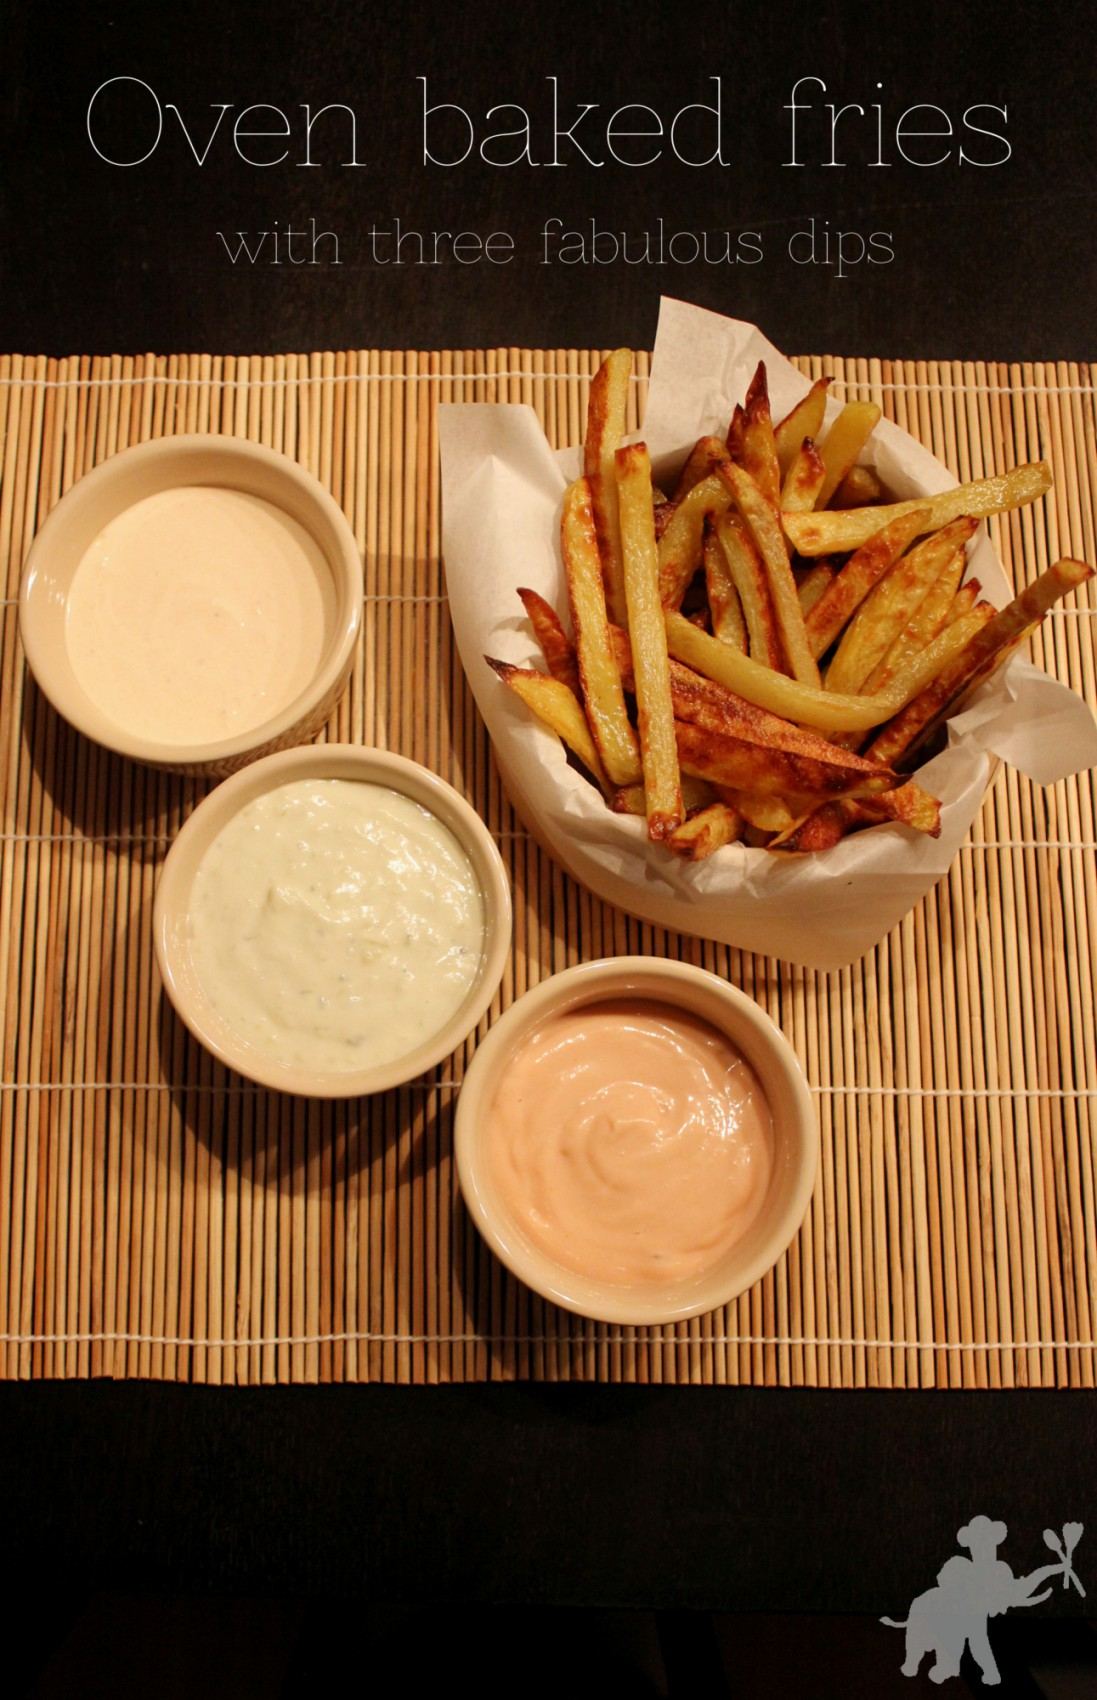 Oven baked fried with three fabulous dips - Gourmet Elephant